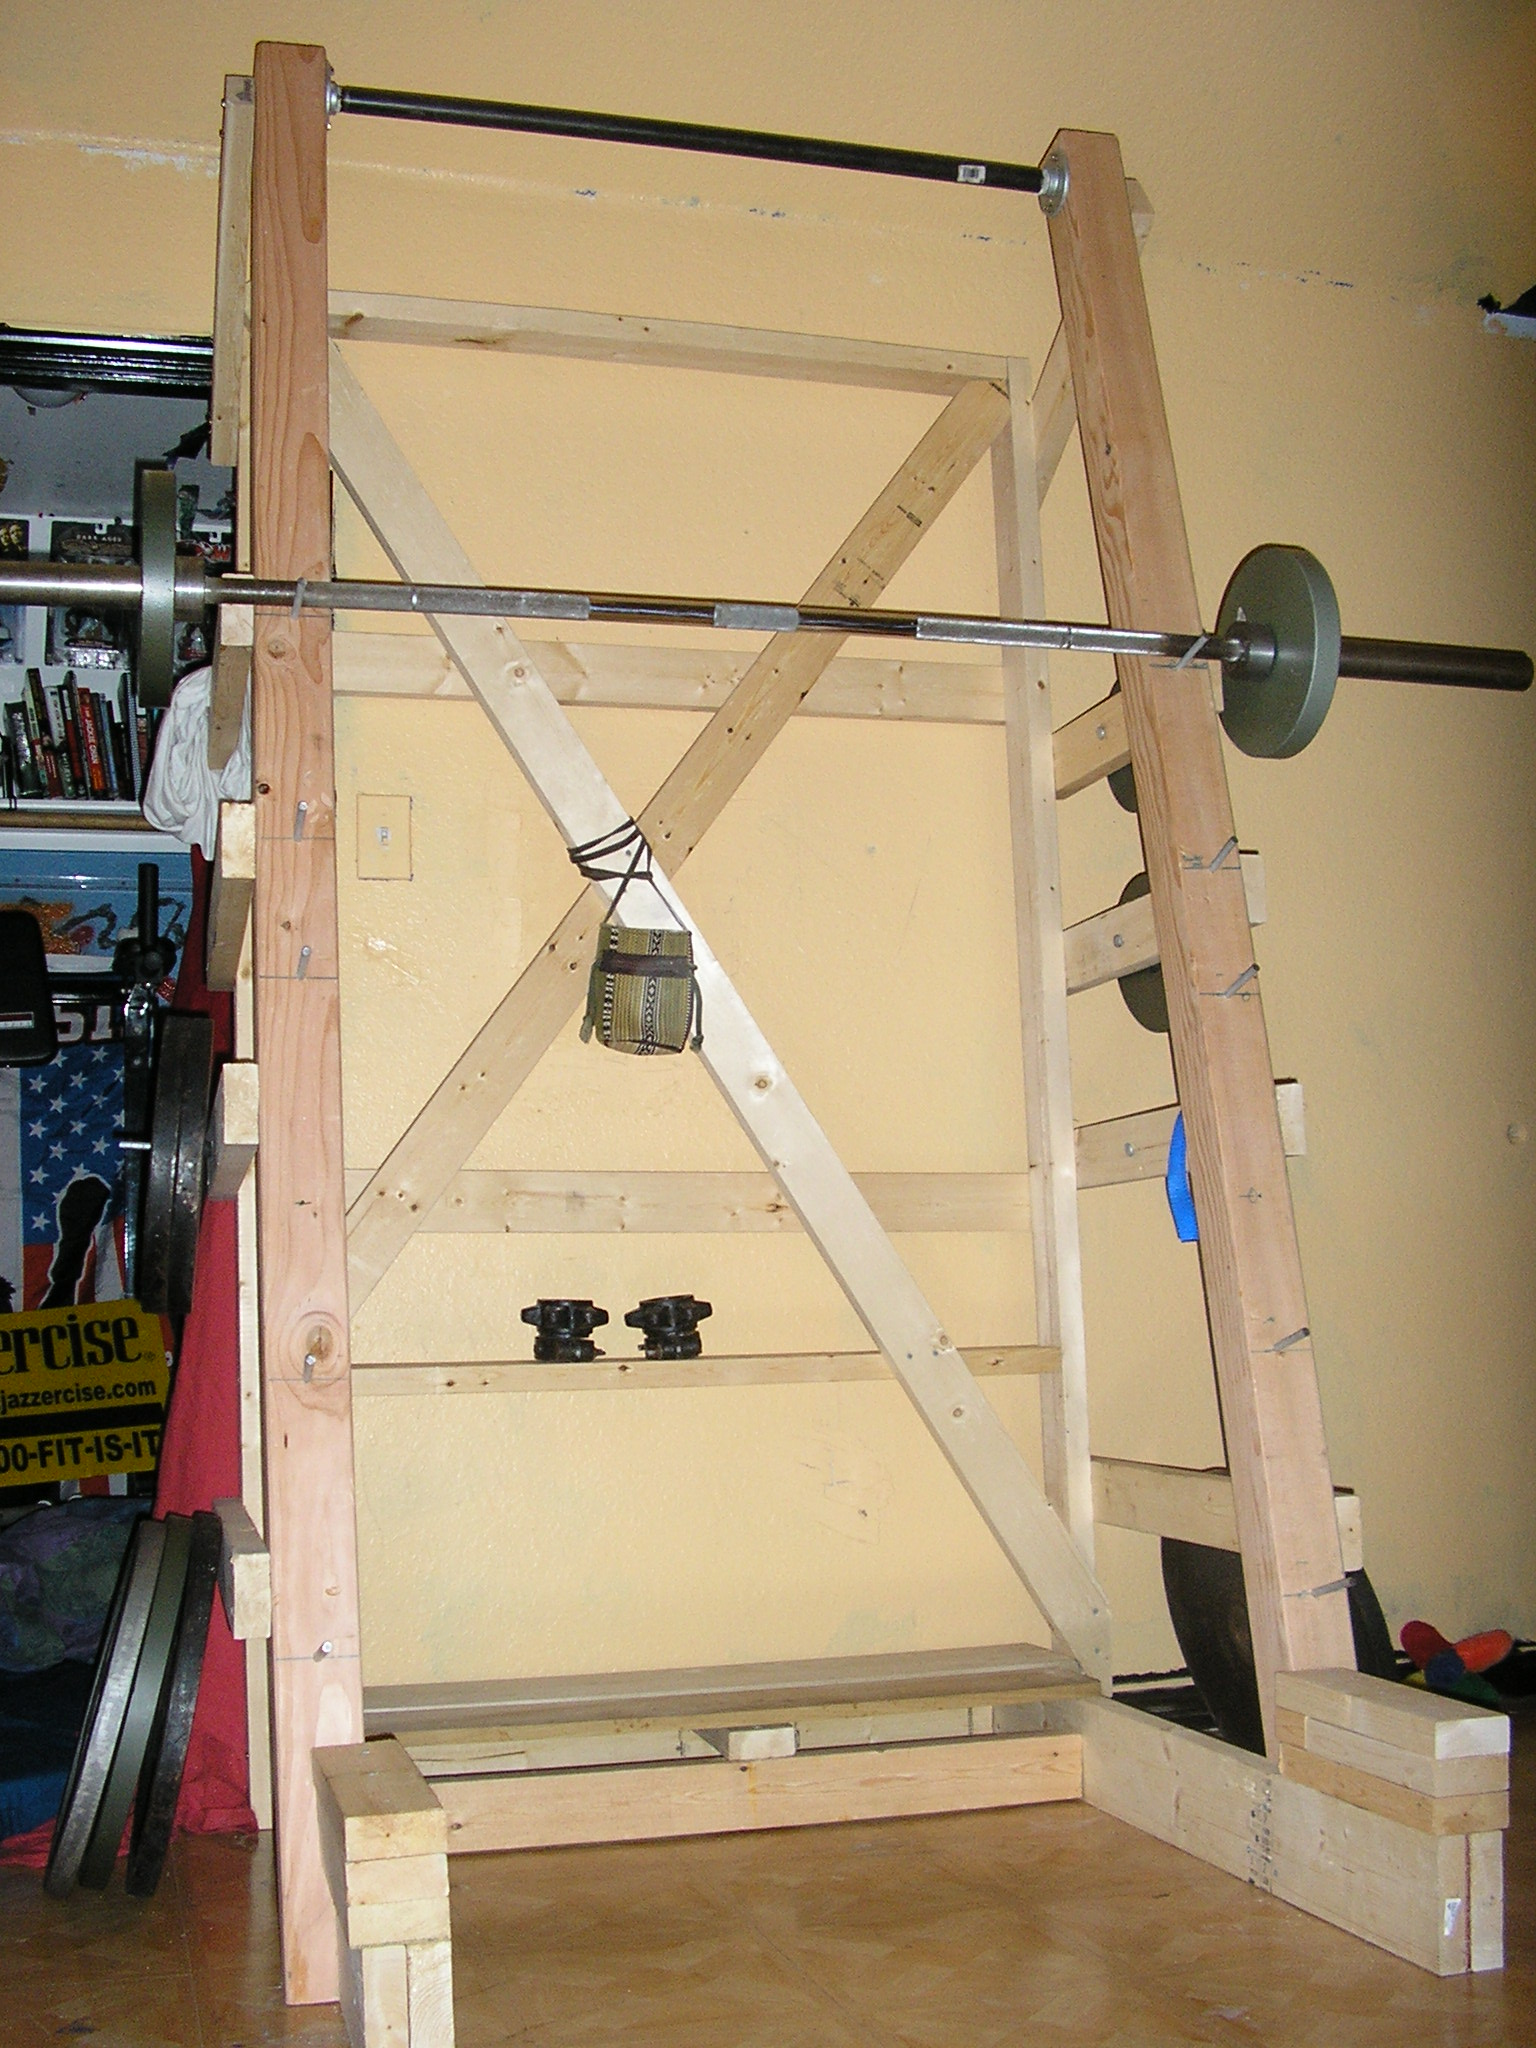 1000 images about homemade fitness equipment on pinterest for A squat rack